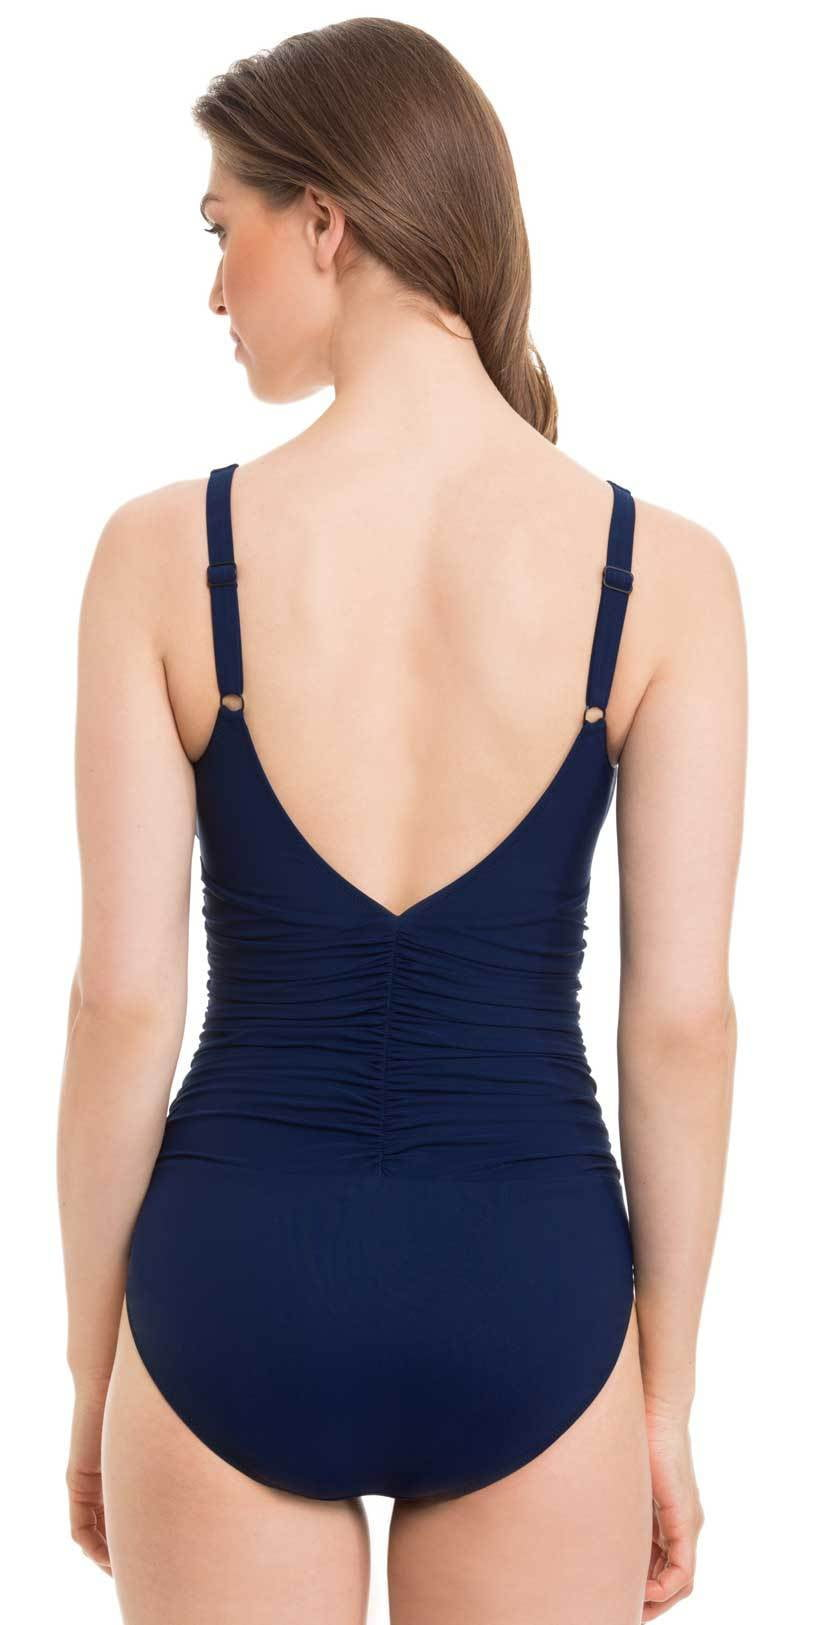 Profile by Gottex Harbor Island Tankini Top E832-1B11-410: